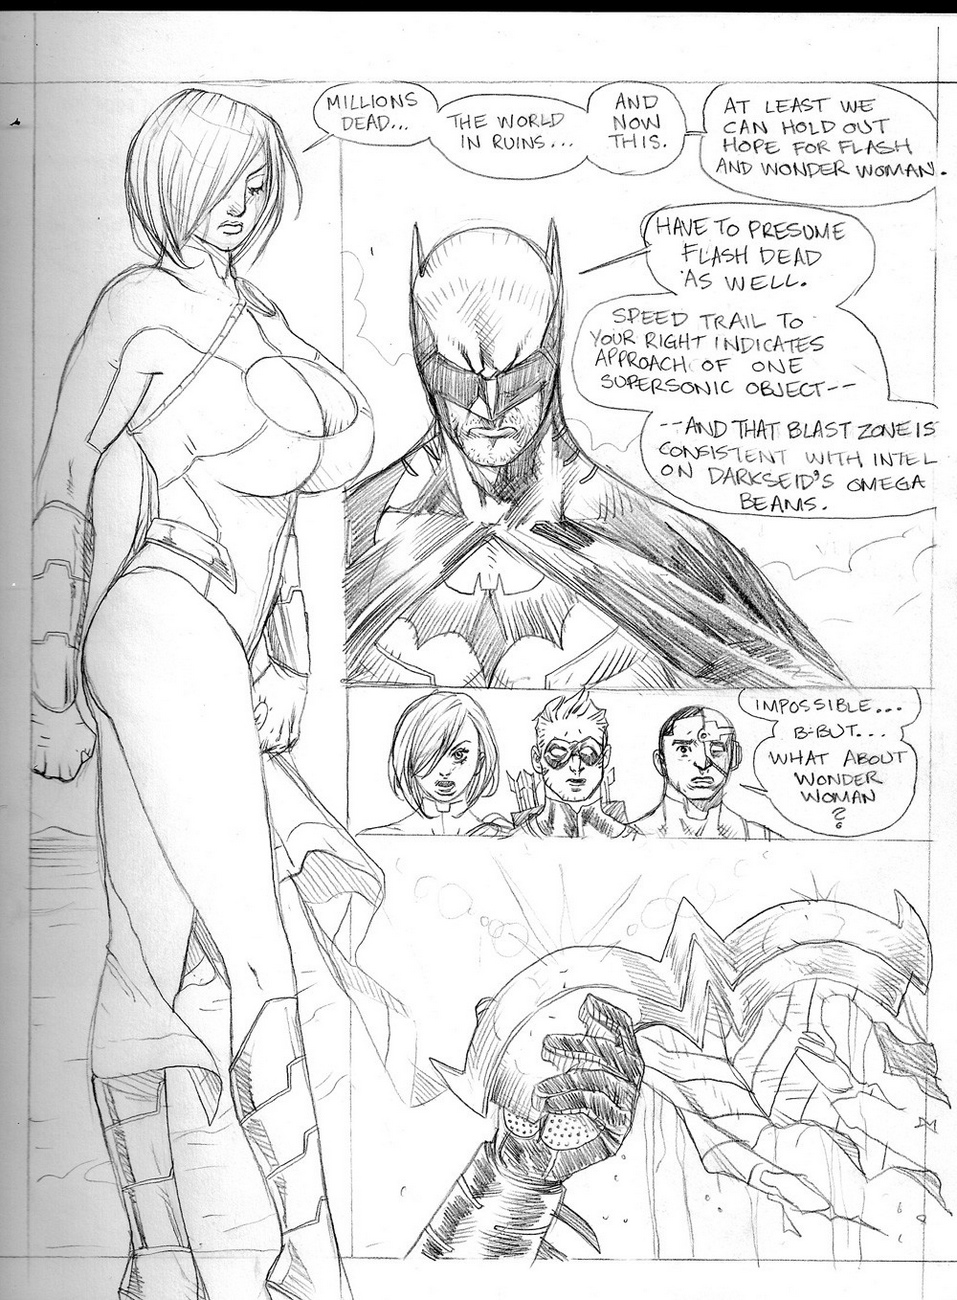 Whores-Of-Darkseid-2-Power-Girl-Violated 3 free sex comic